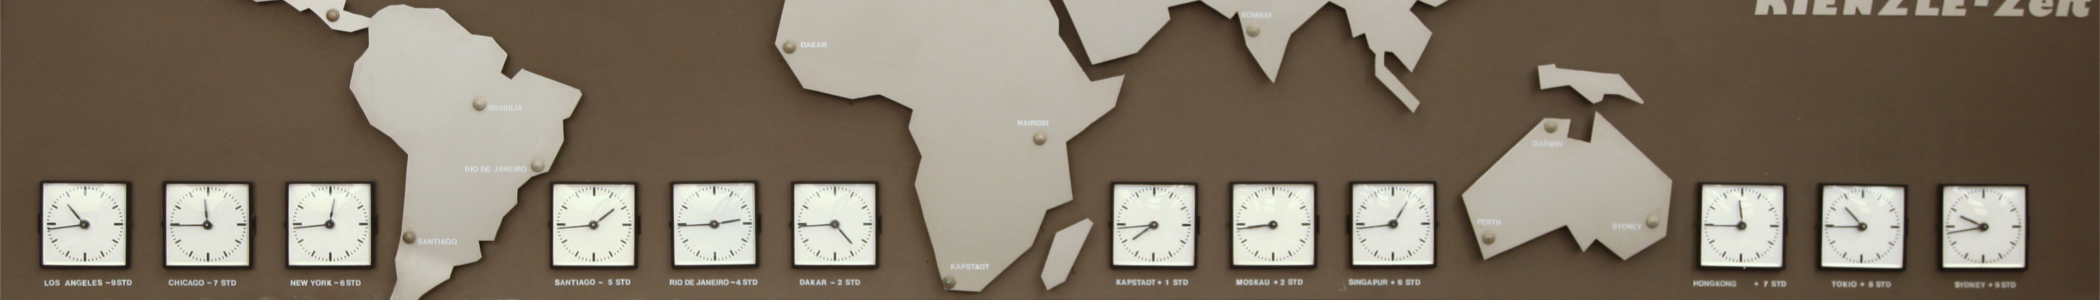 Time zones – Travel guide at Wikivoyage